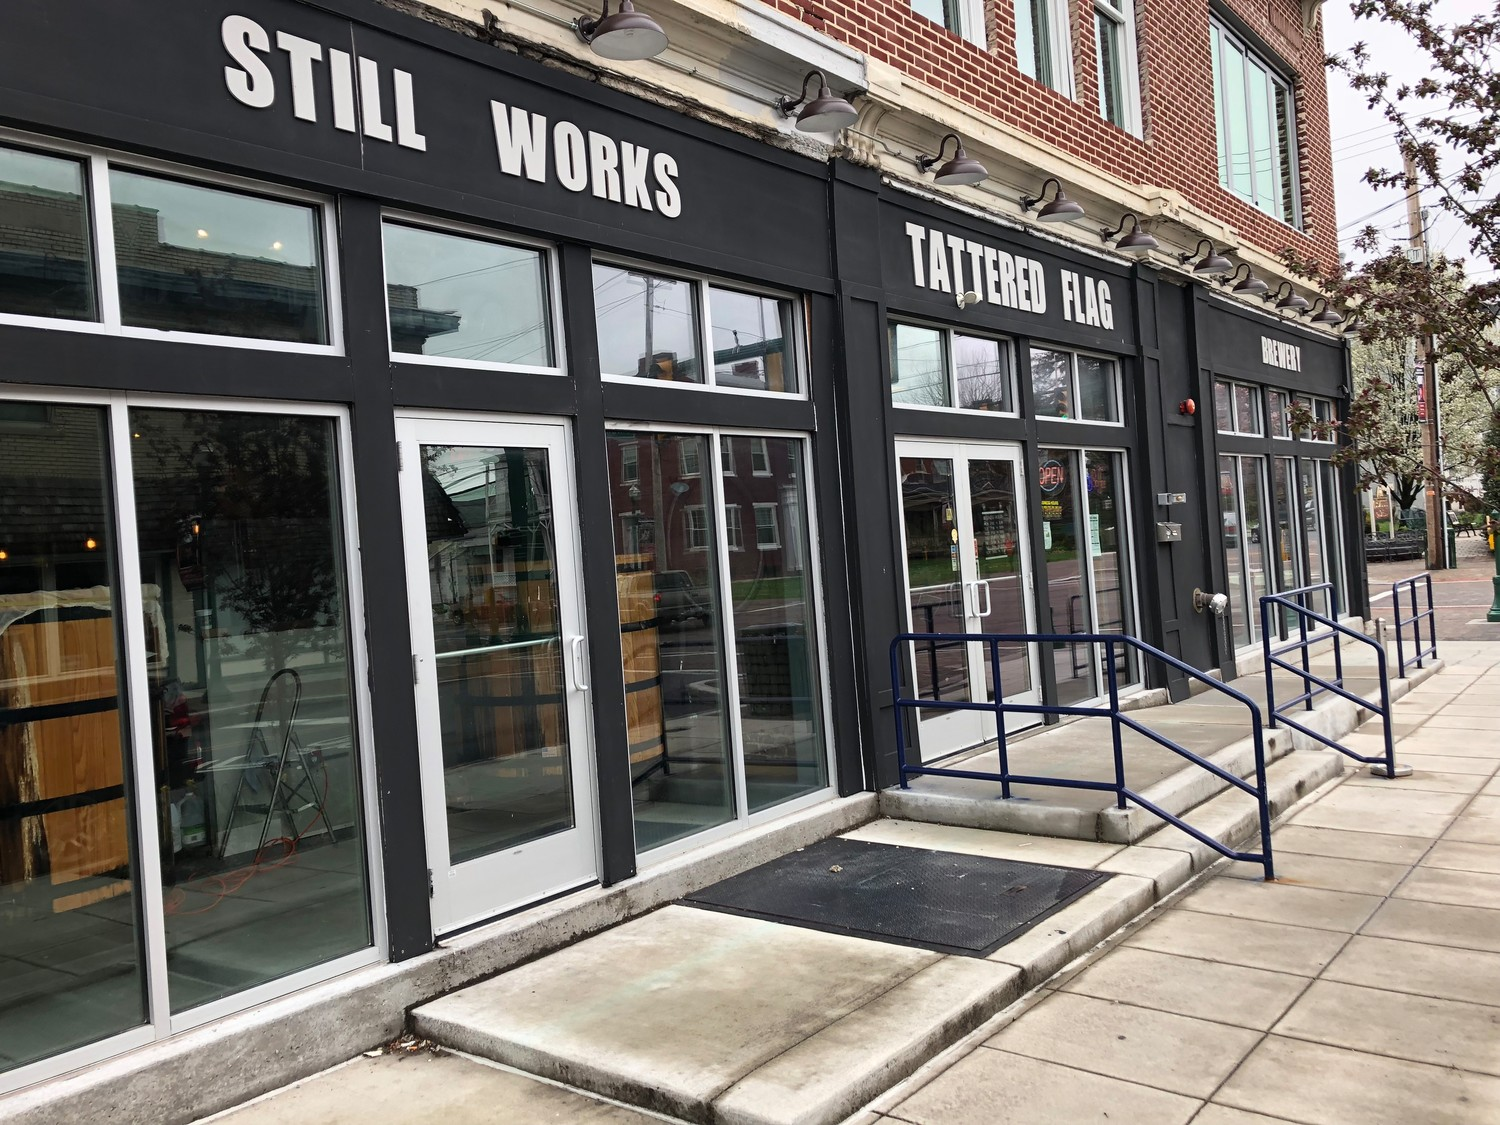 Tattered Flag has asked the borough permission to provide outdoor seating for up to 26 customers at eight tables in front of Tattered Flag's home in the former Elks Building at South Union and West Emaus streets.